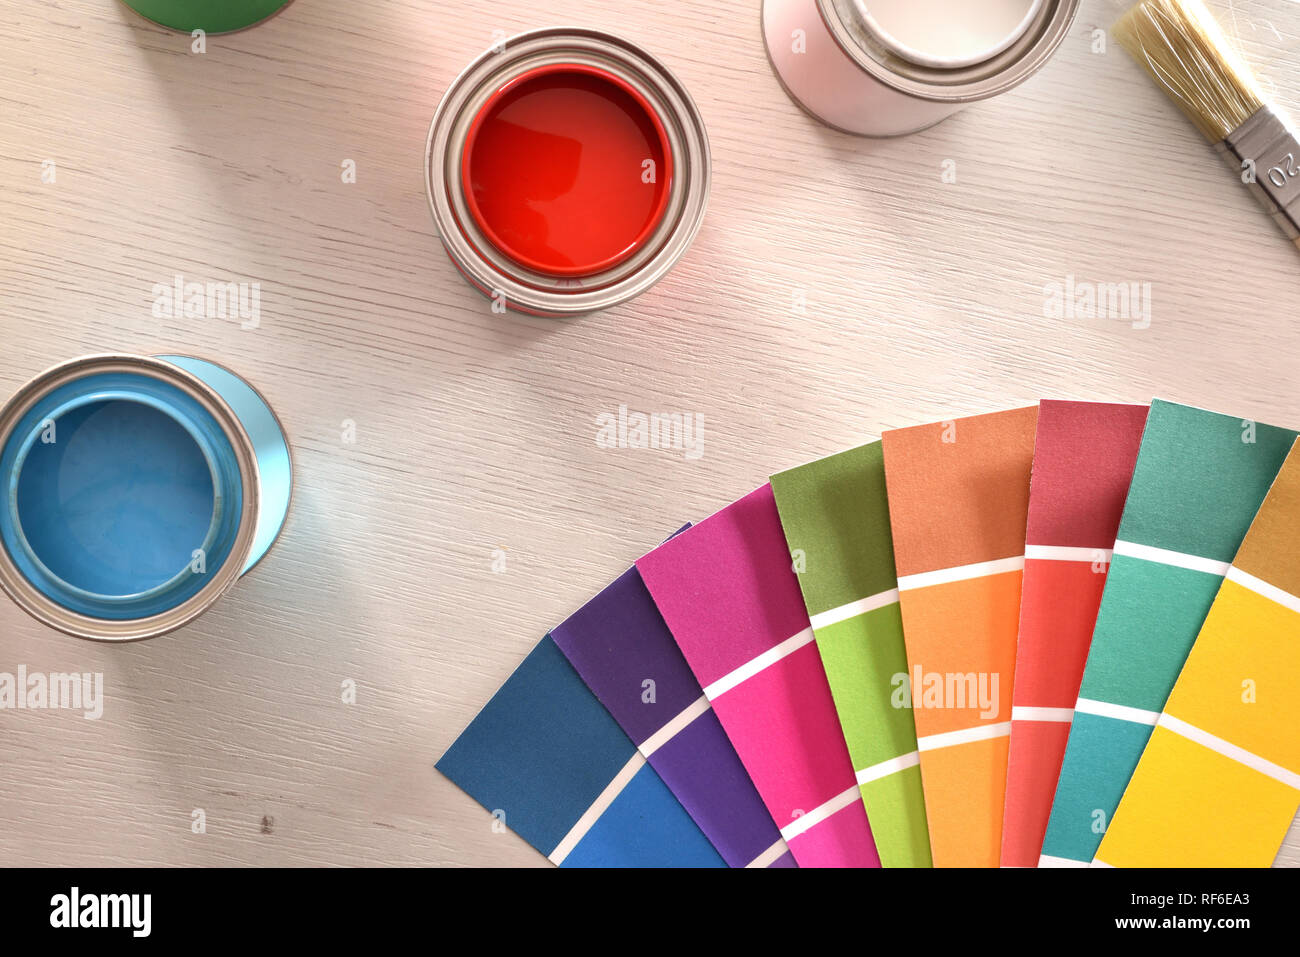 Colorful paint pots open and color palette on white table for renovation of materials. Top view. Horizontal composition. Stock Photo